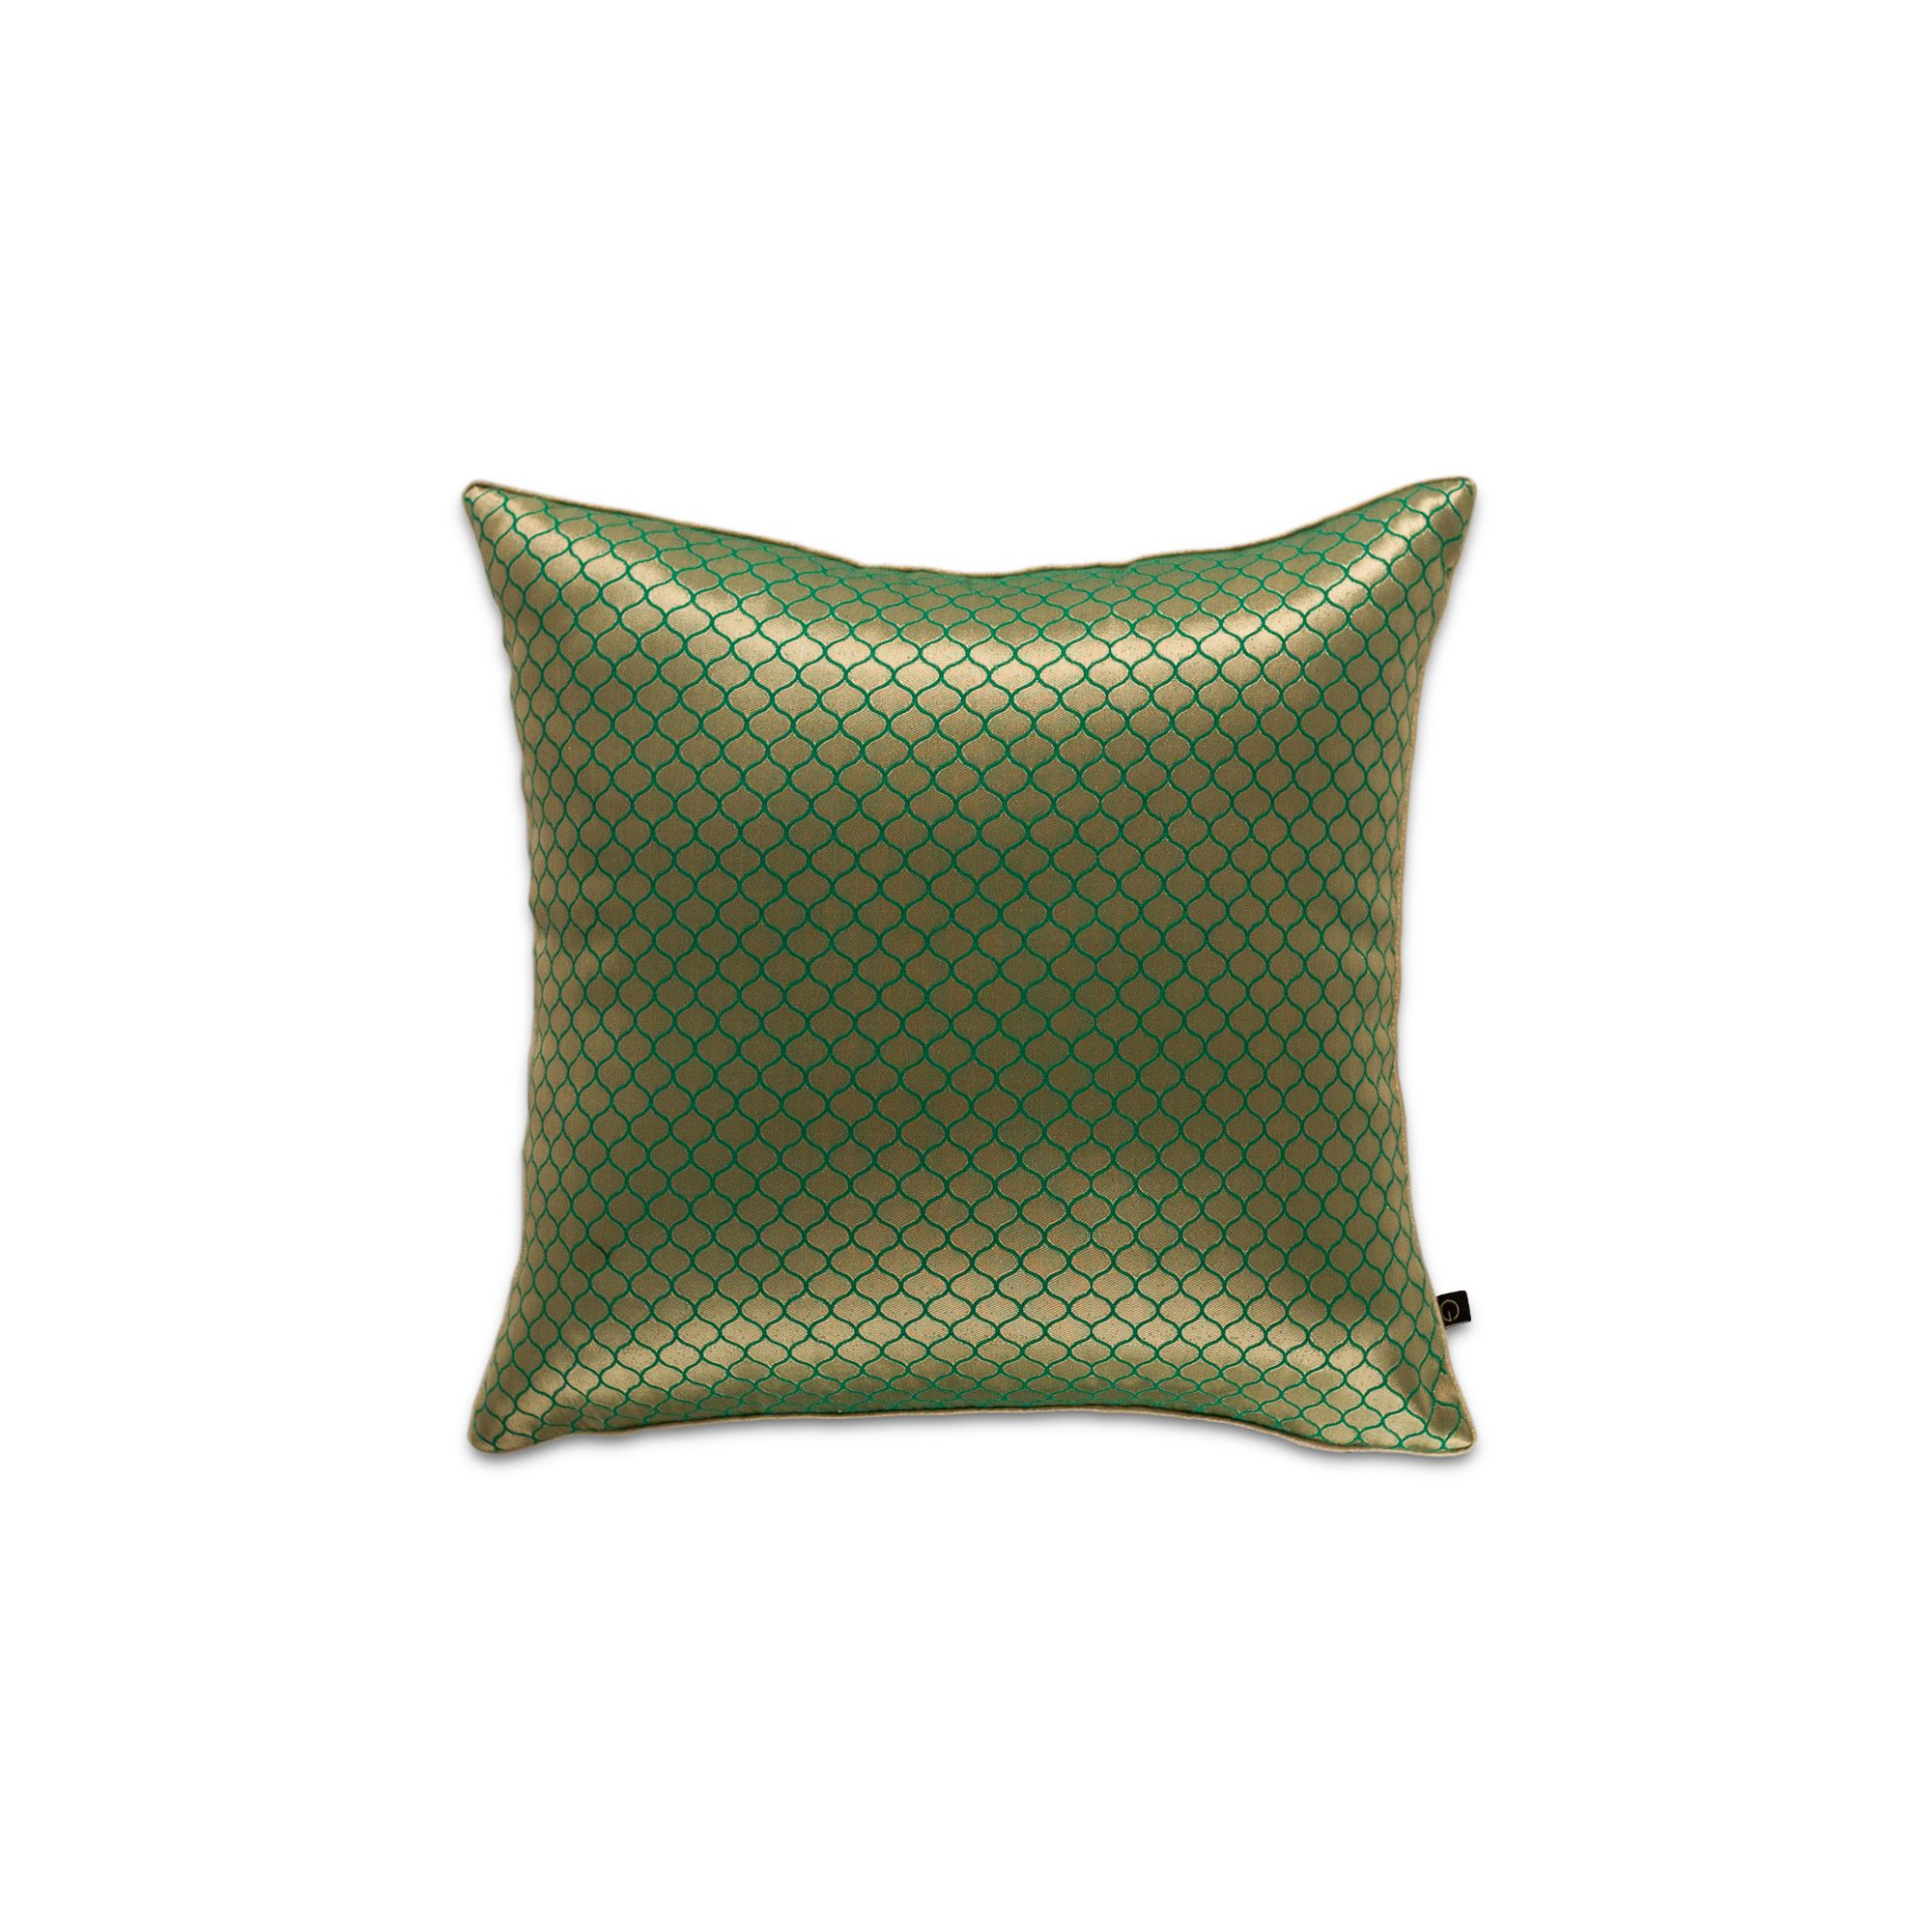 Mehtab Bagh Cushion Cover Collection Olivian